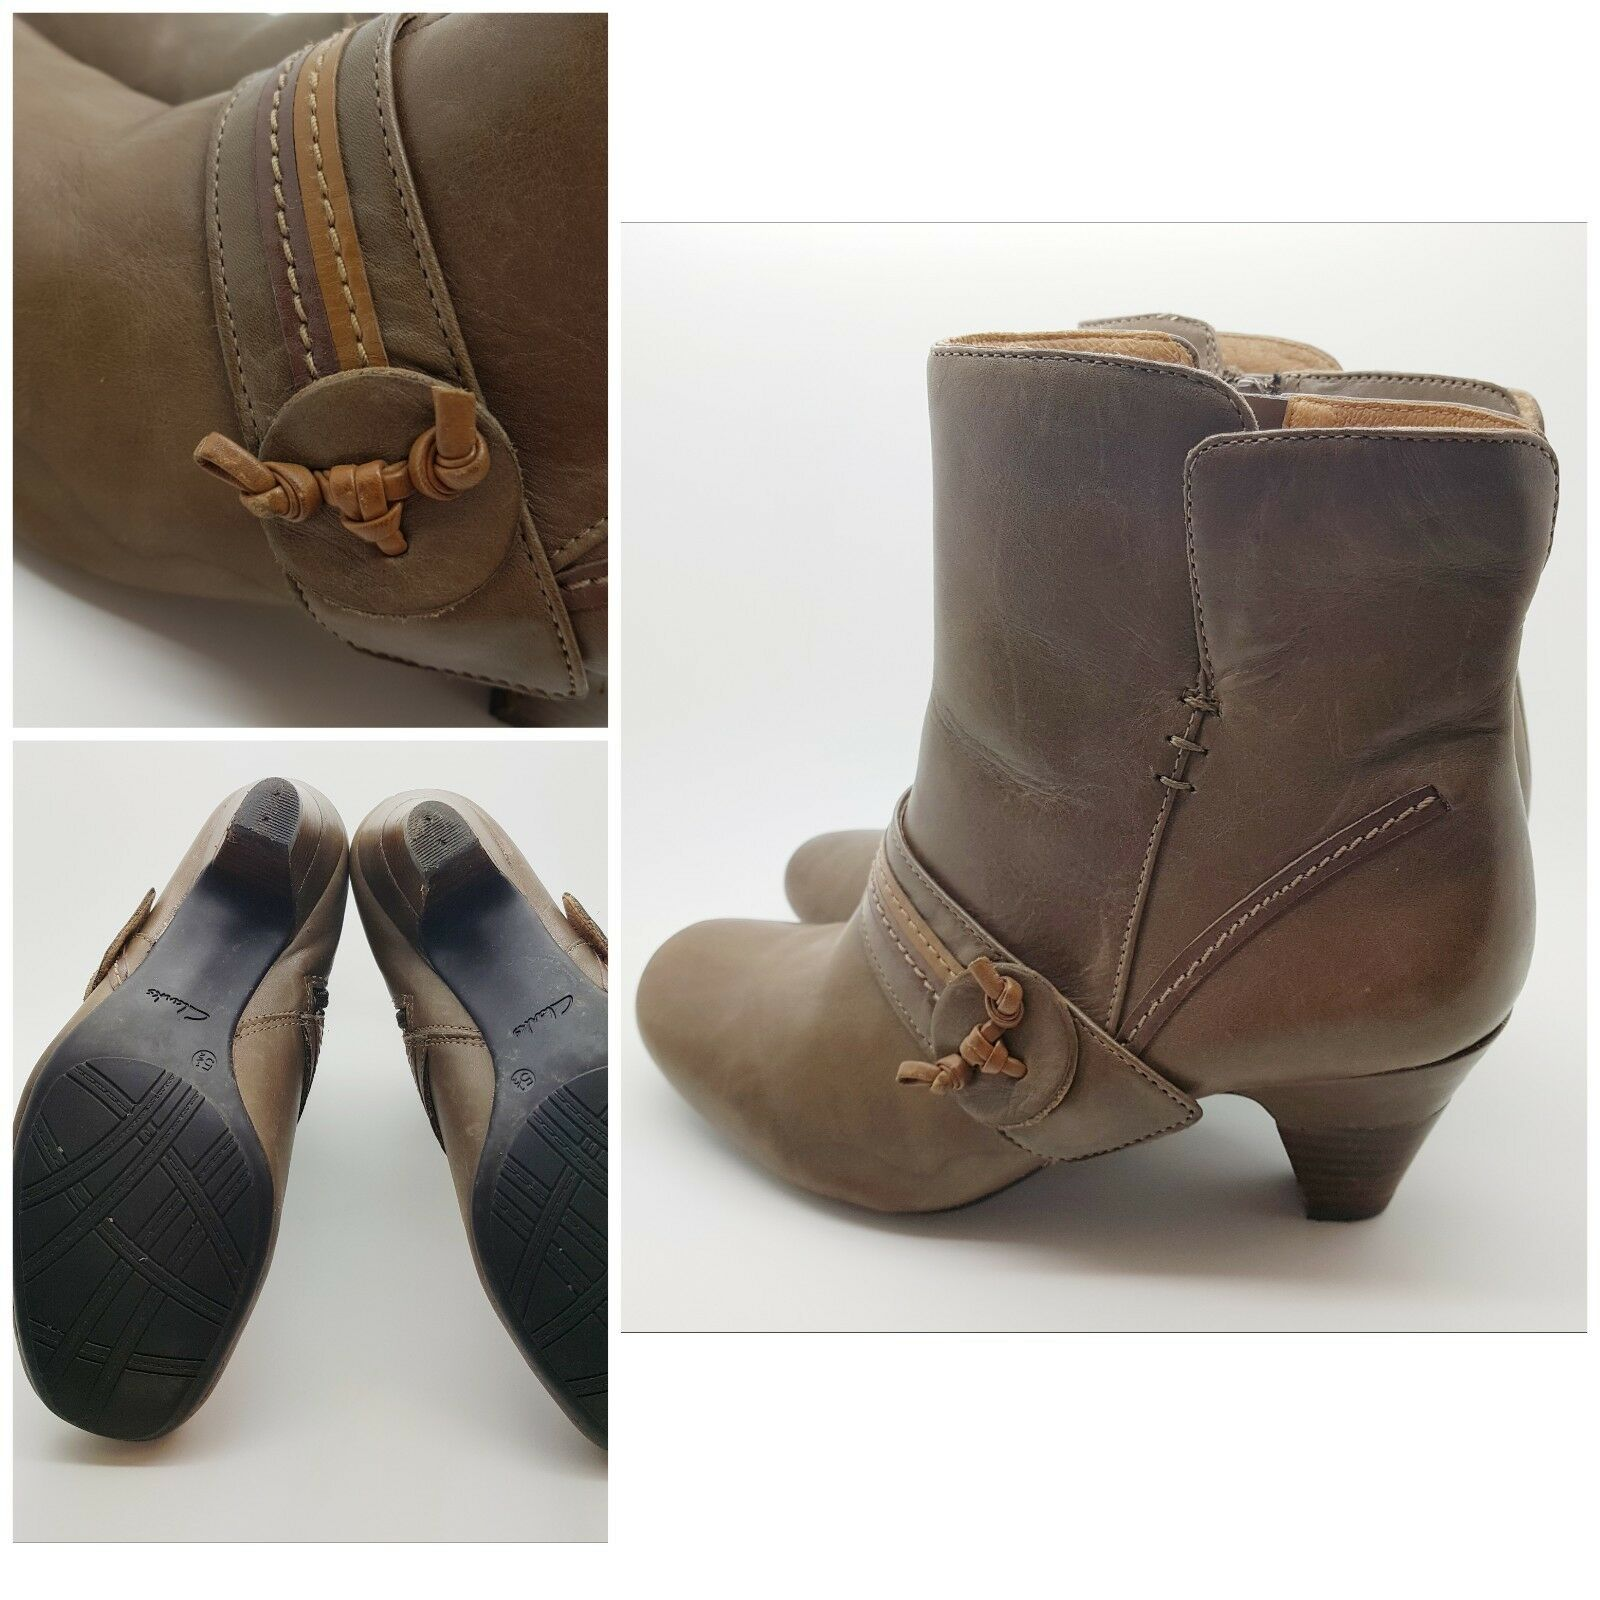 Clarks Softwear Ankle Boots Brown Leather Kitten Heel Zipped E